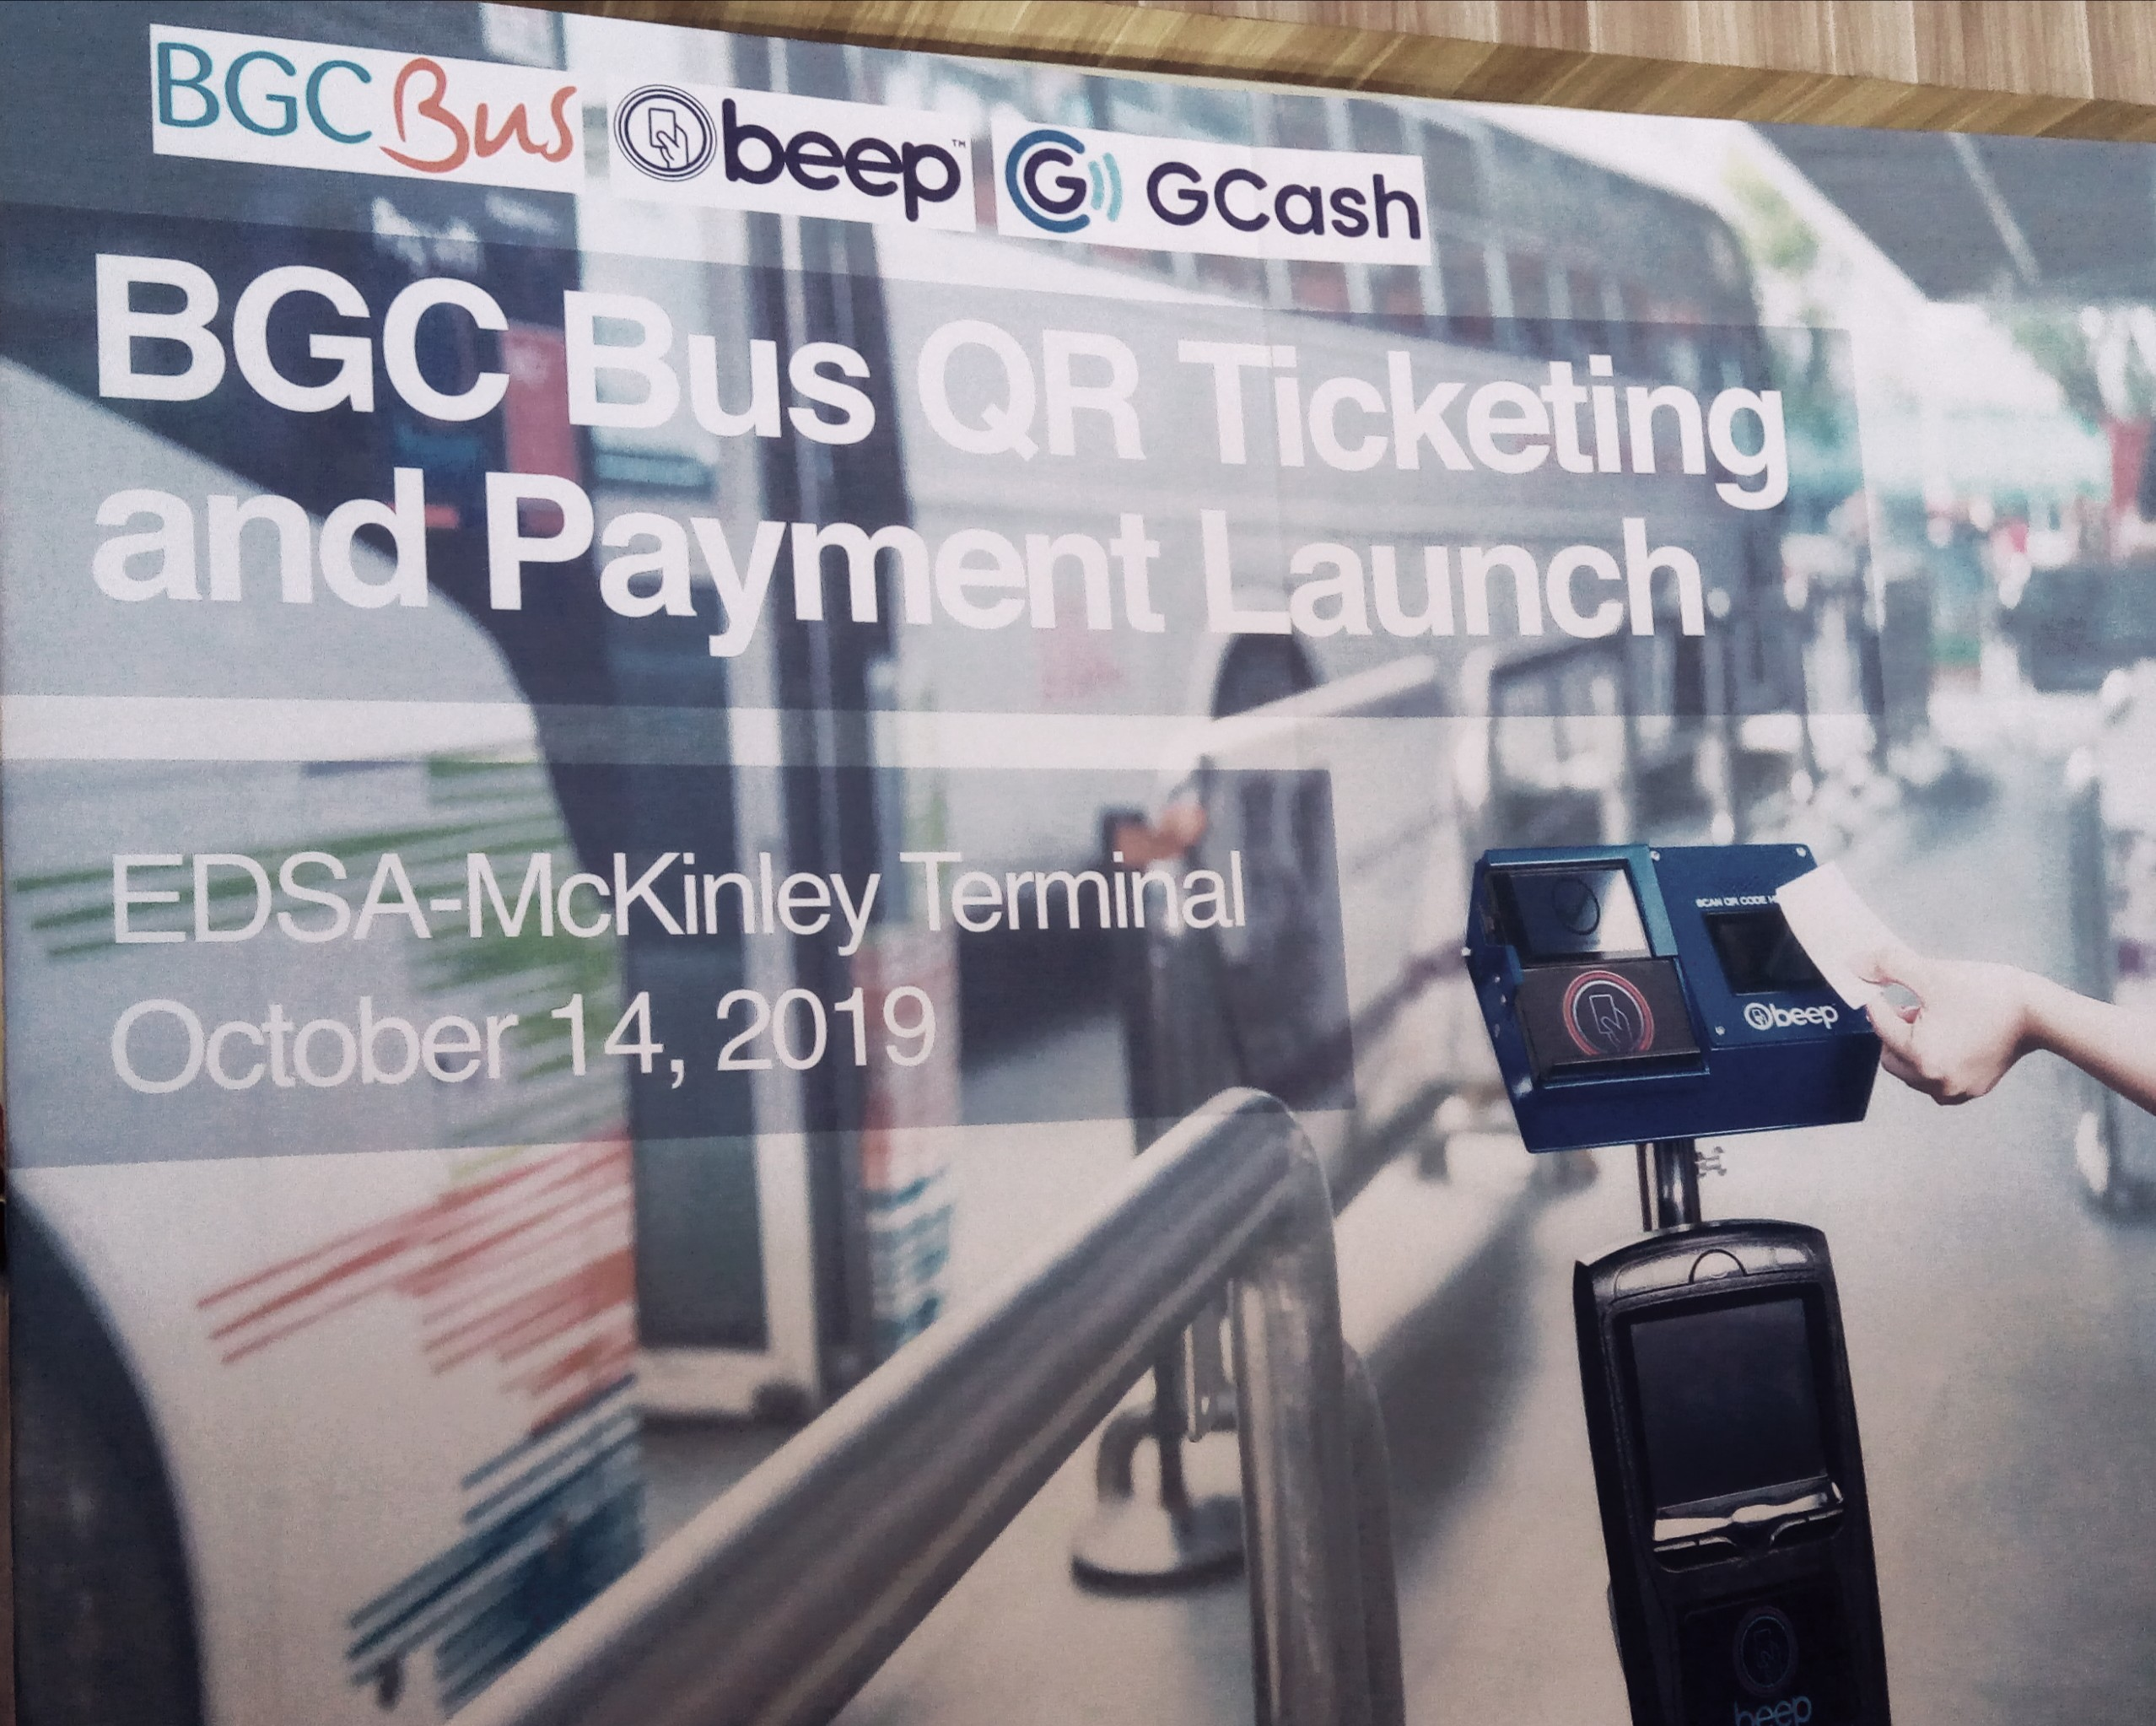 AF Payments, beep, GCash, transport ticketing, QR Codes